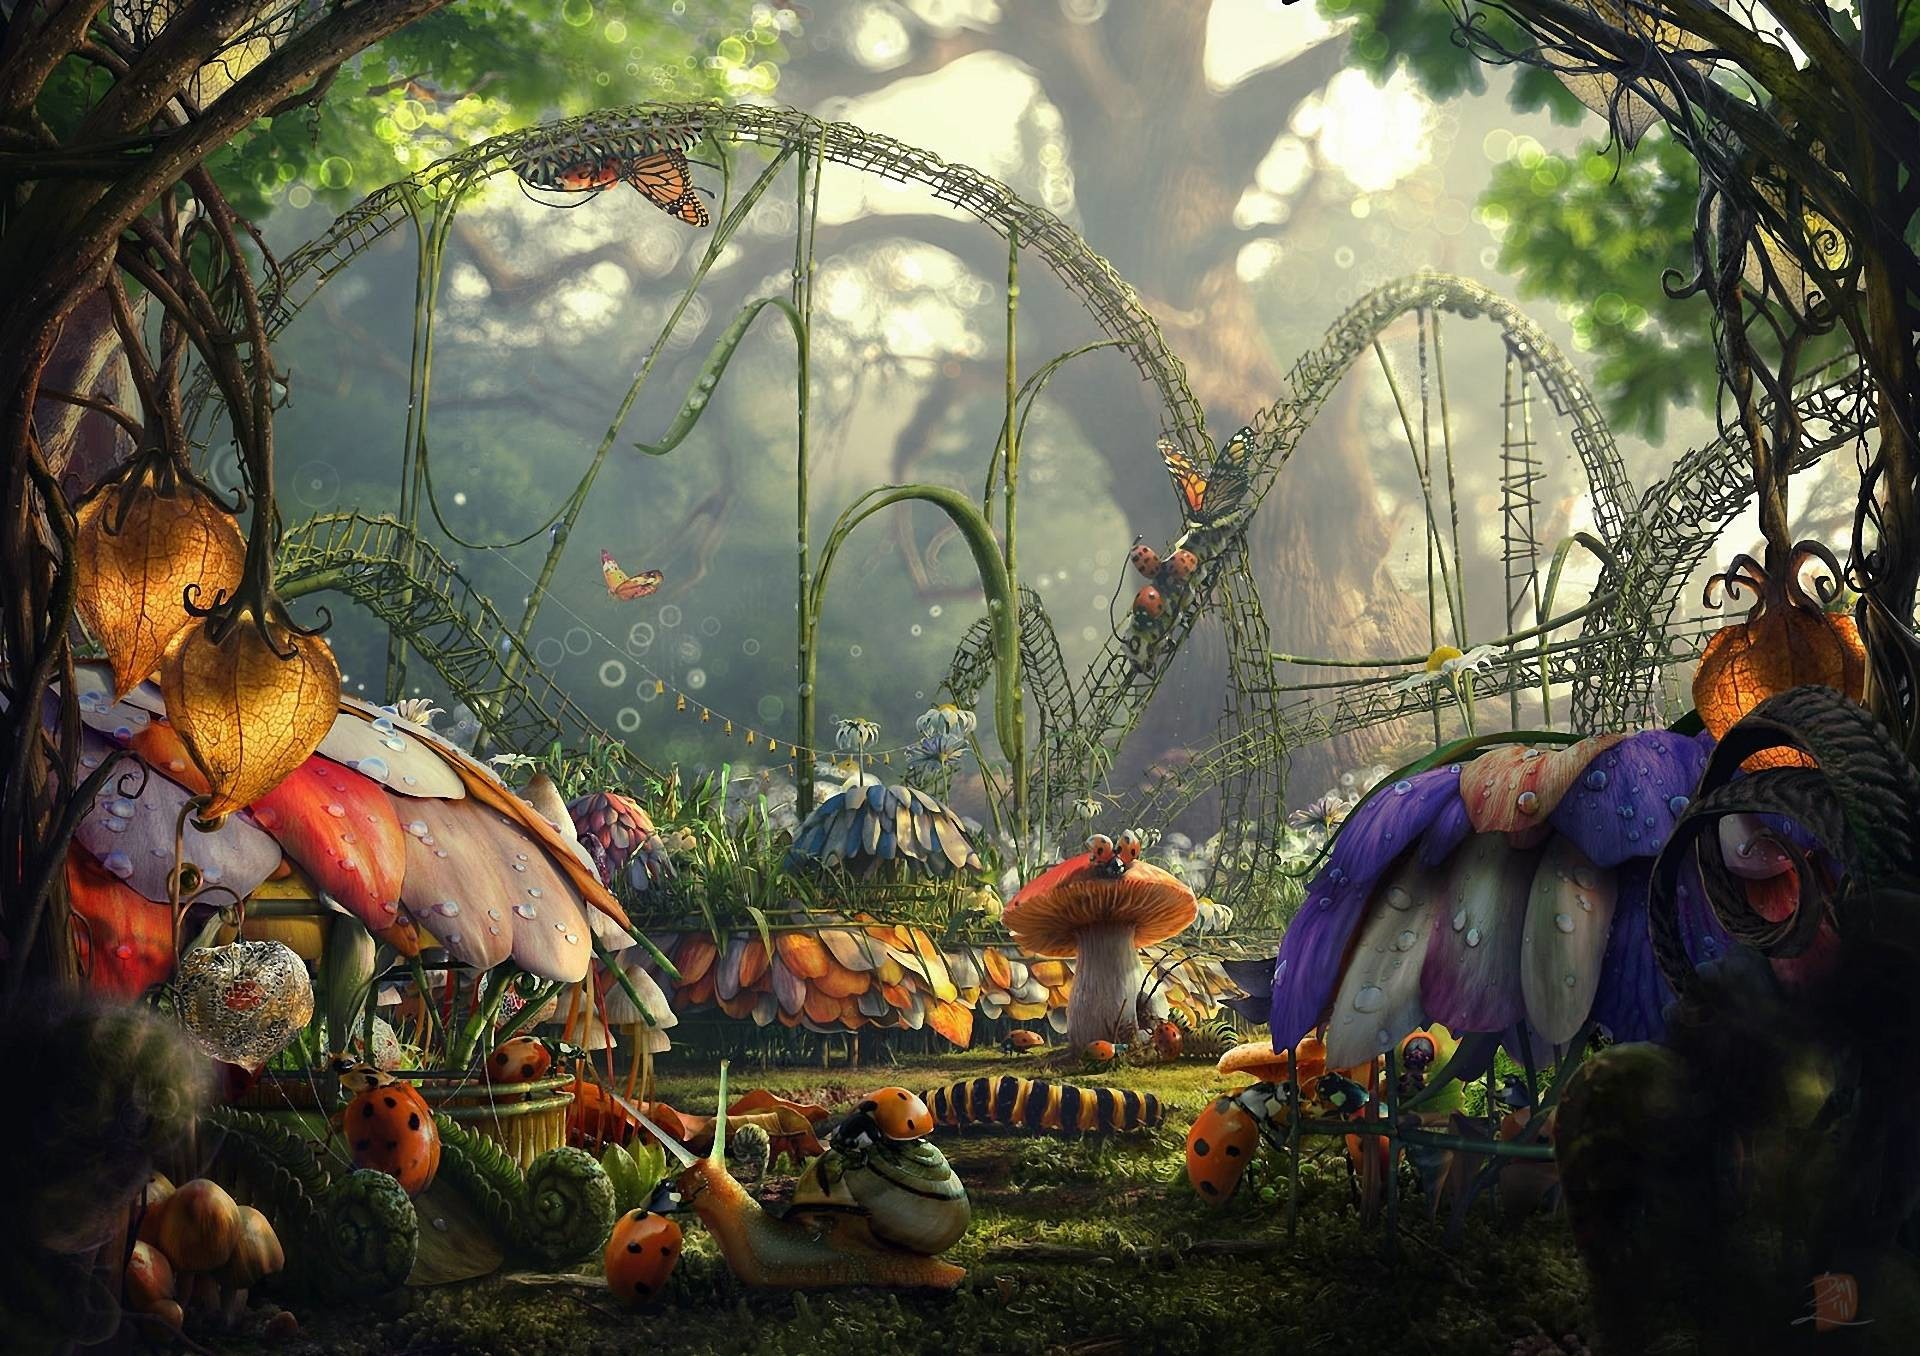 1920x1356 Fairytale Forest Insects City - Nature Wallpapers